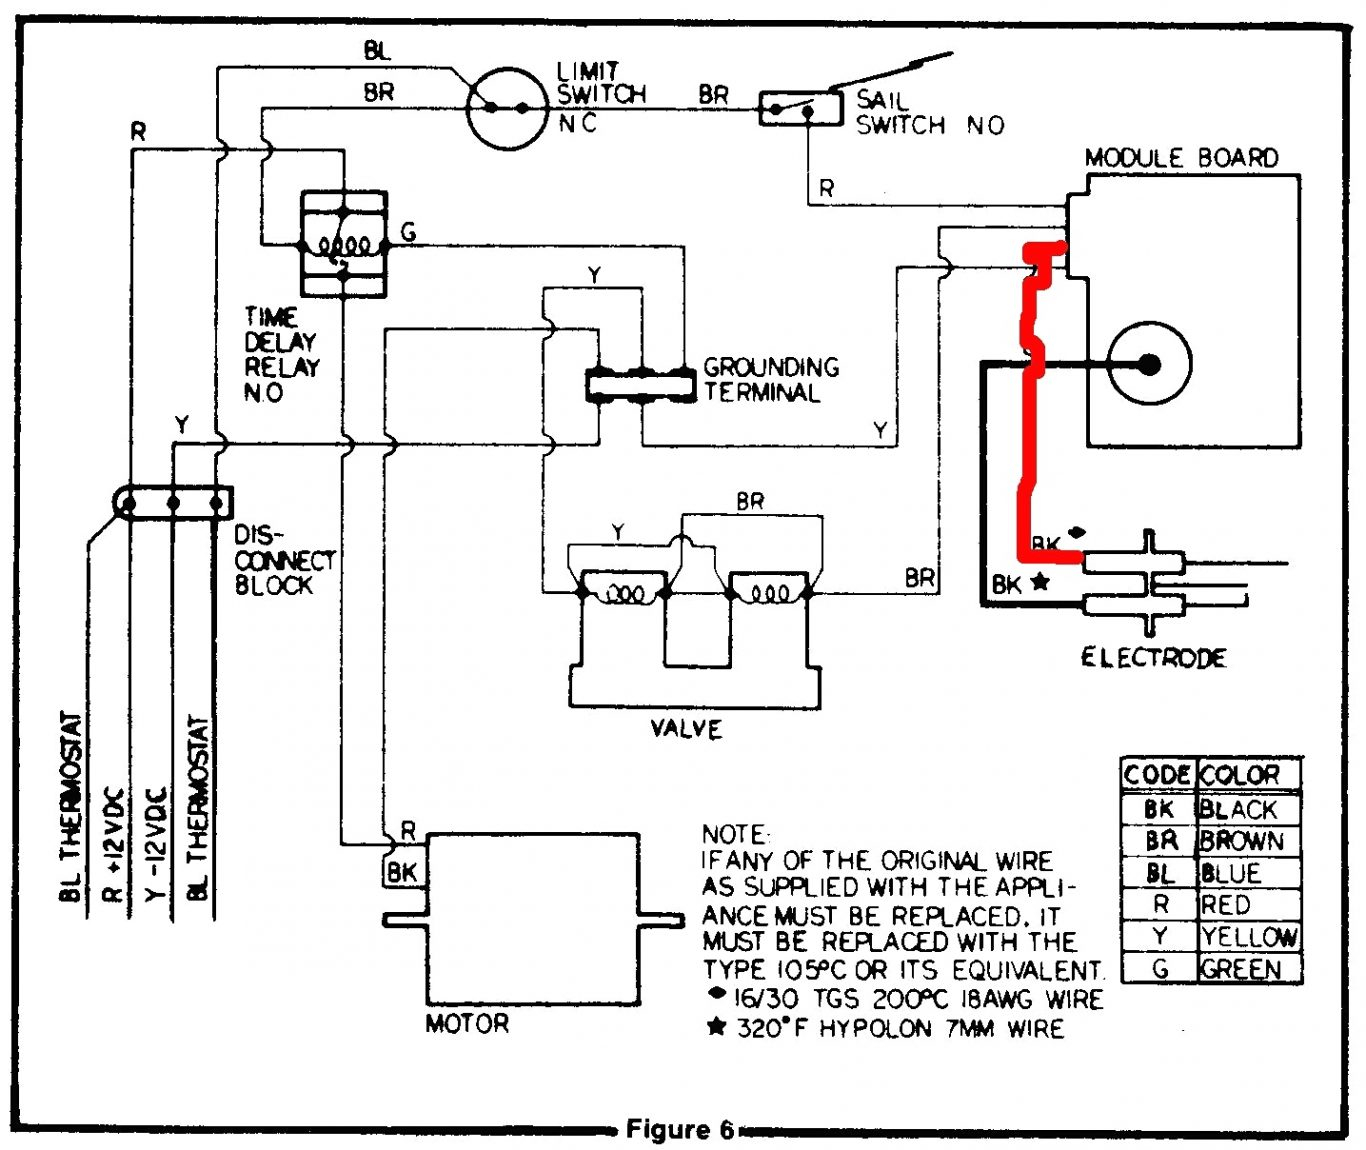 coleman evcon suncutter wiring diagram coleman evcon eb17b transformer diagram coleman evcon thermostat wiring diagram download #5